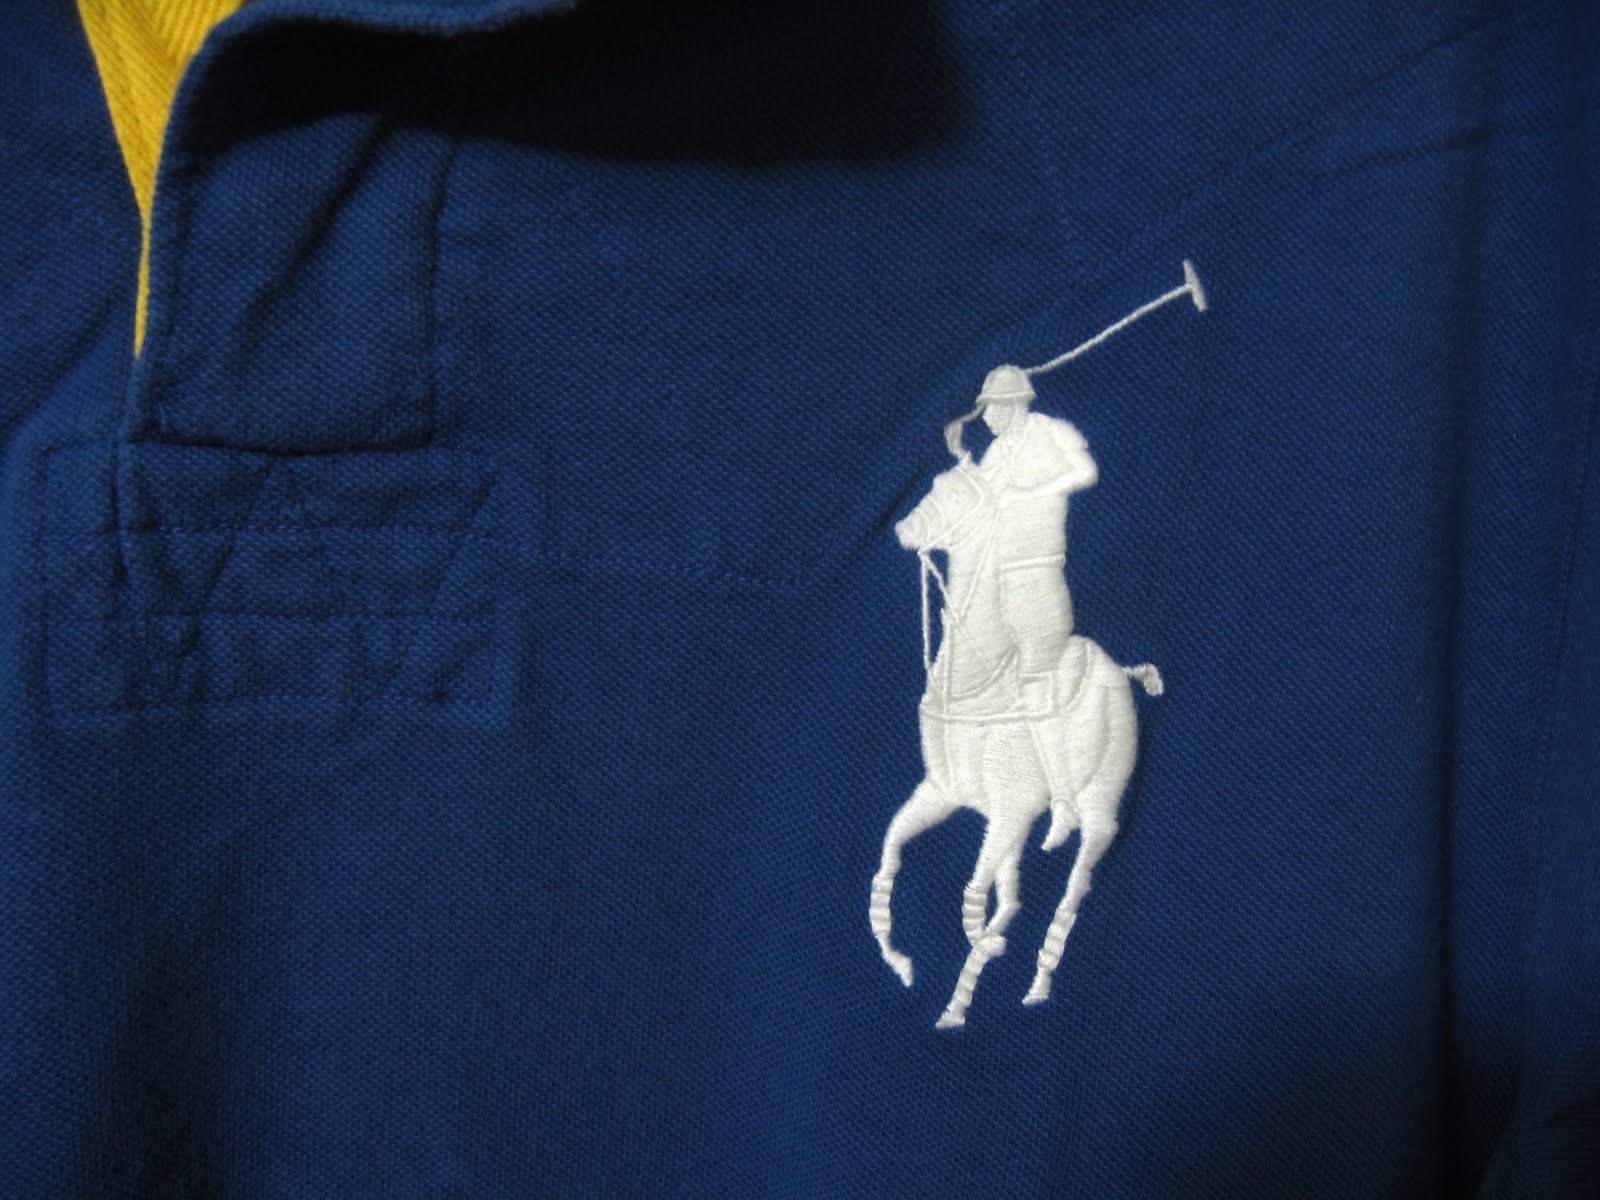 Polo Logo Wallpaper 1600x1200